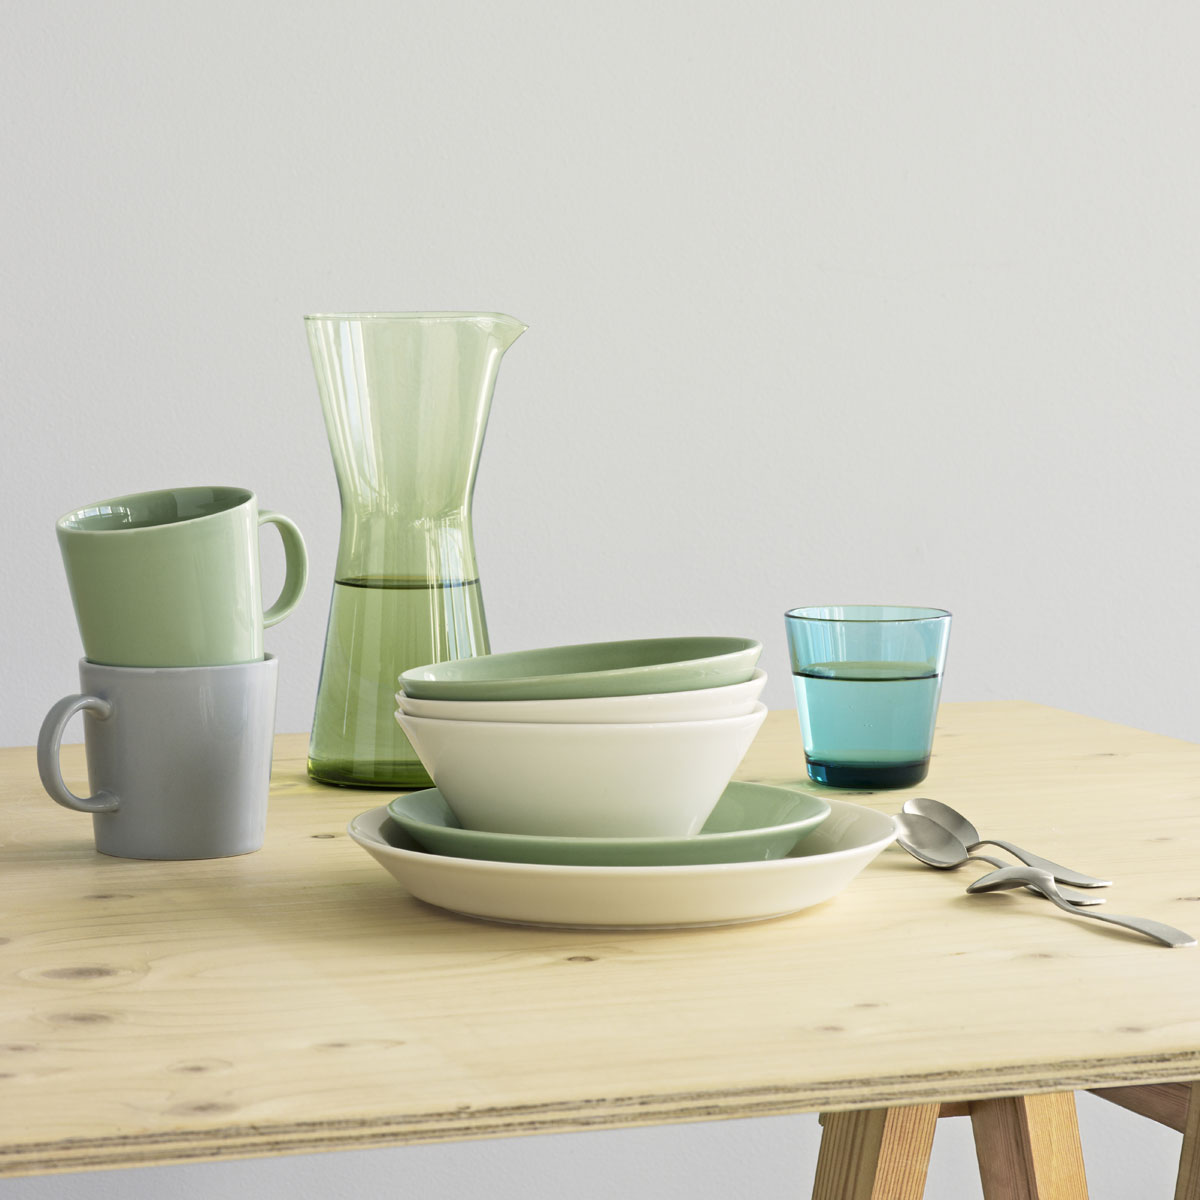 Iittala Teema servies: back to basics